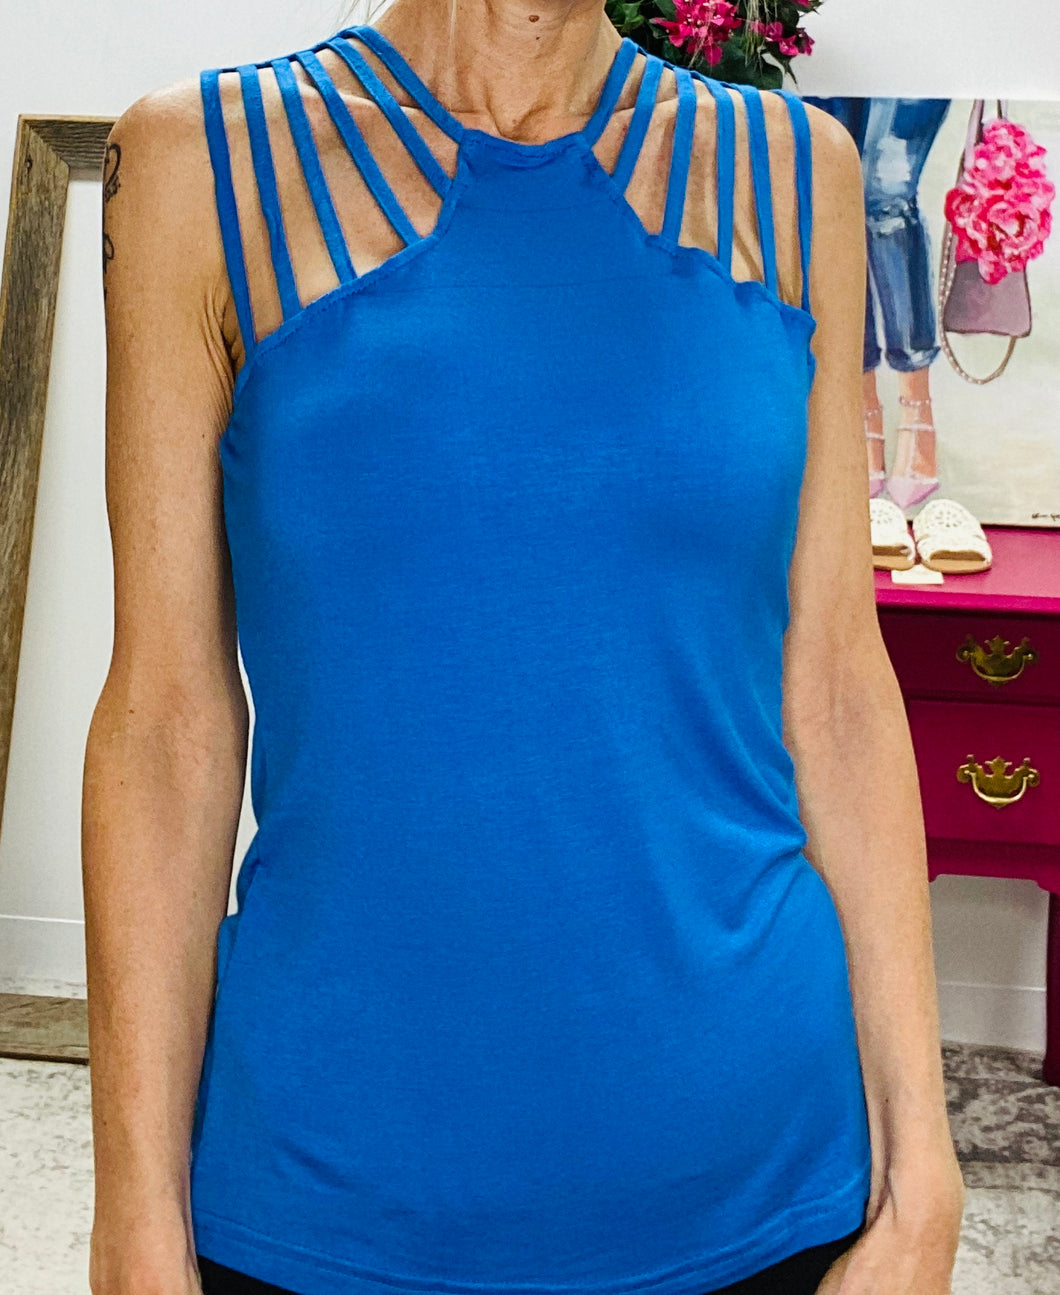 Blue Super Strappy Sleeveless Top 4/30/21 8372